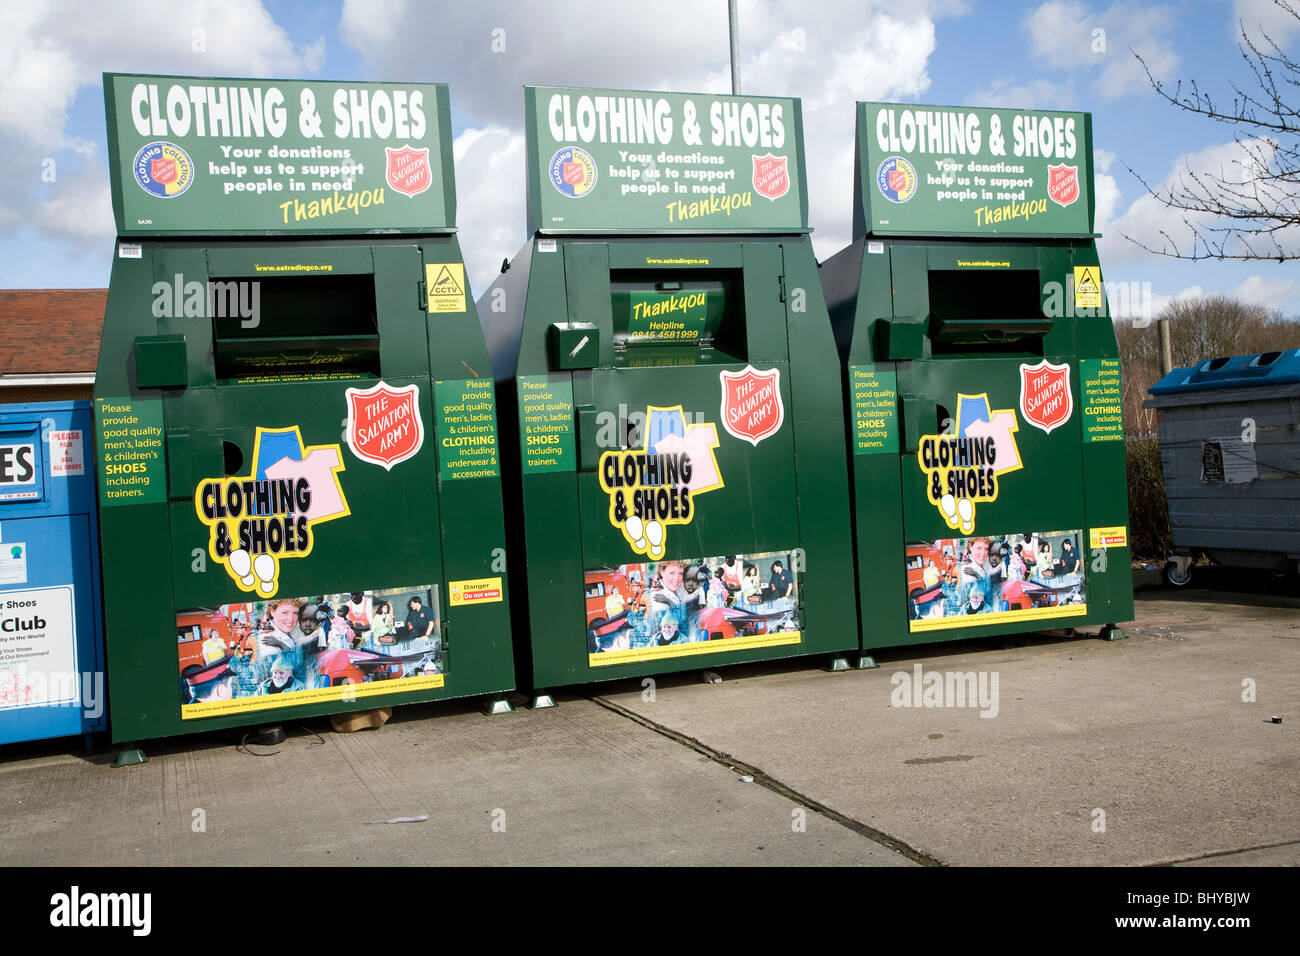 Recycling collection containers for shoes and clothing - Stock Image